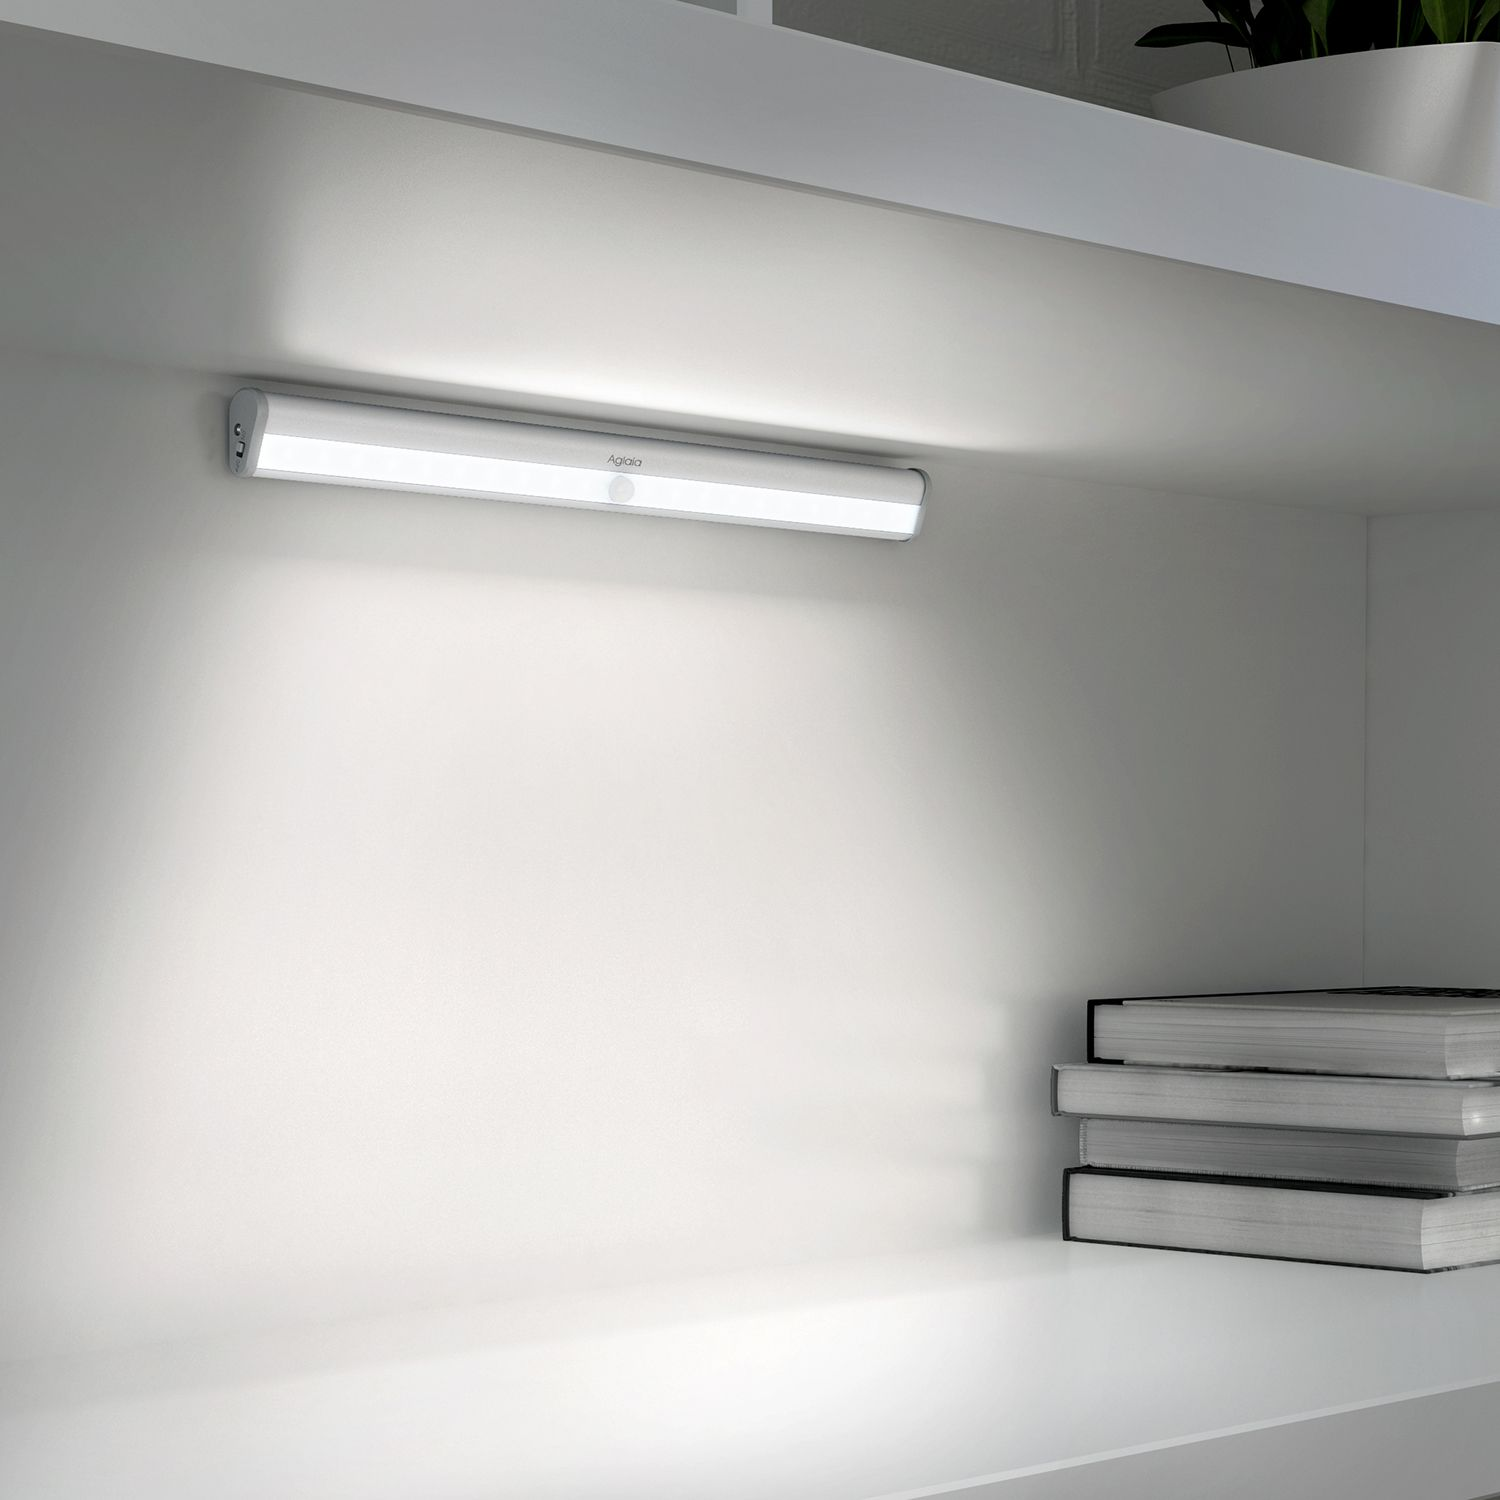 Aglaia Led Cabinet Light Usb Rechargeable Motion Sensor Light With 10 Leds Wireless Stick On Anywhere L Closet Lighting Led Closet Light Motion Sensor Lights